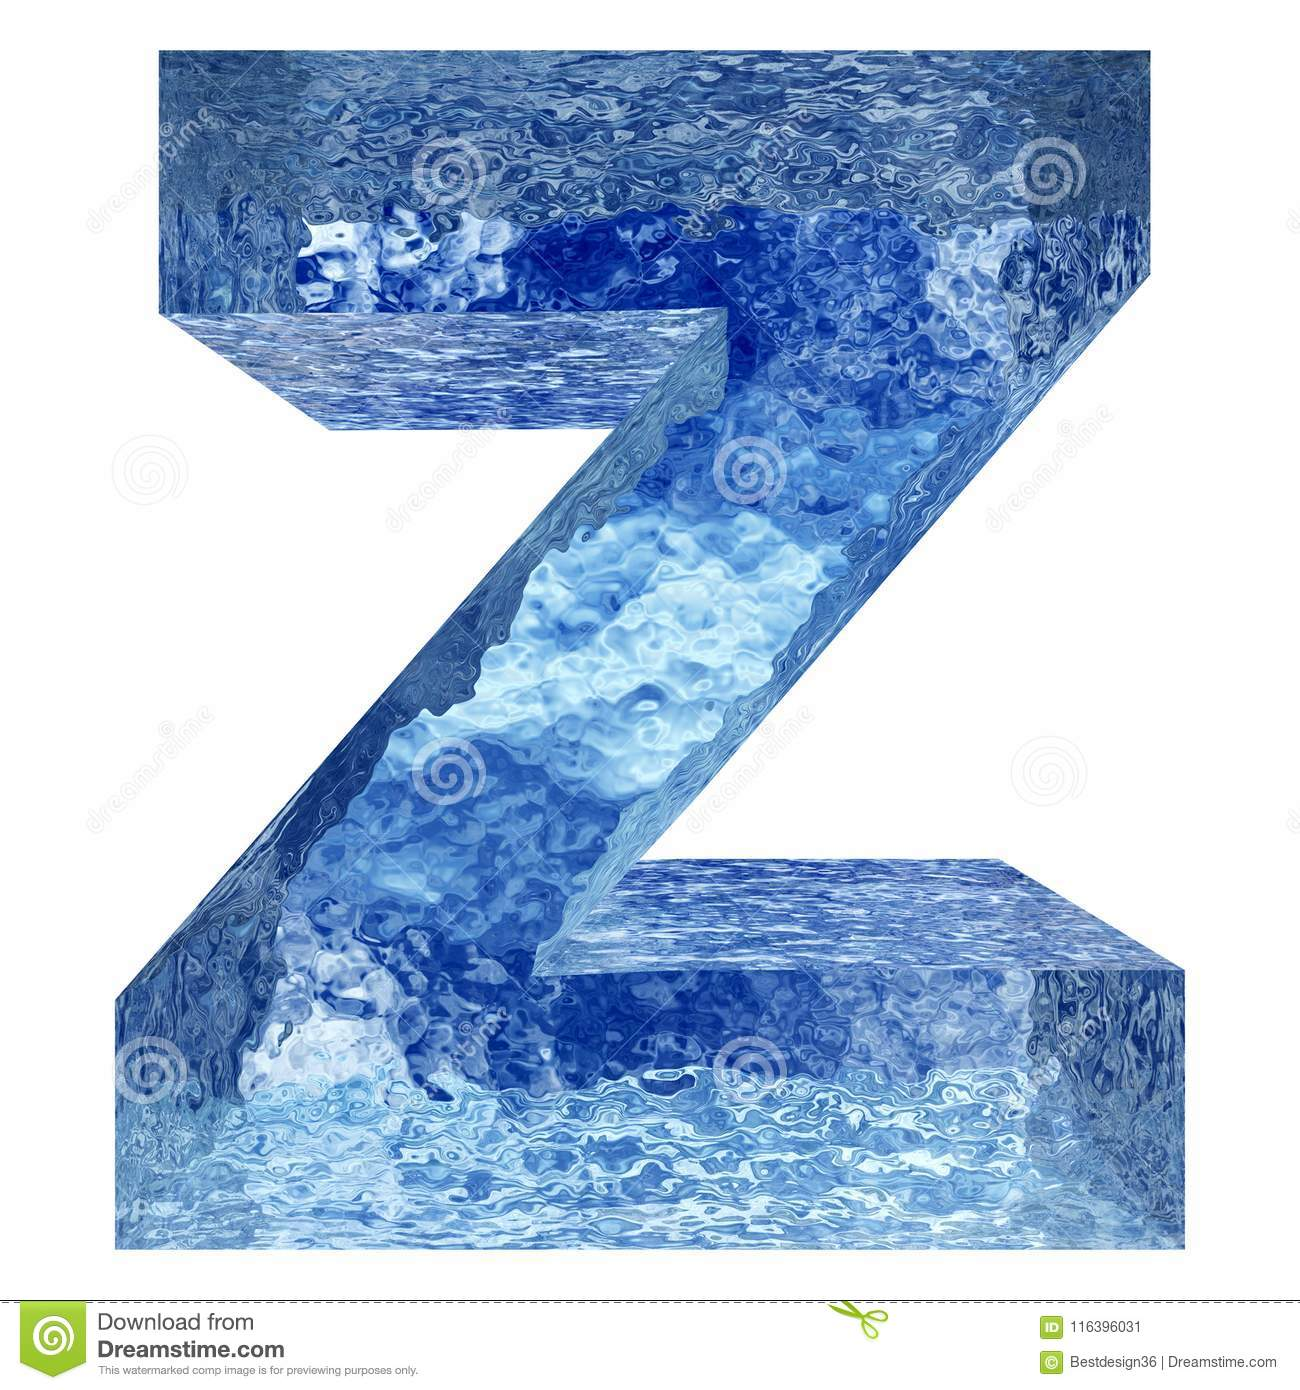 Blue water or ice font part of colletion